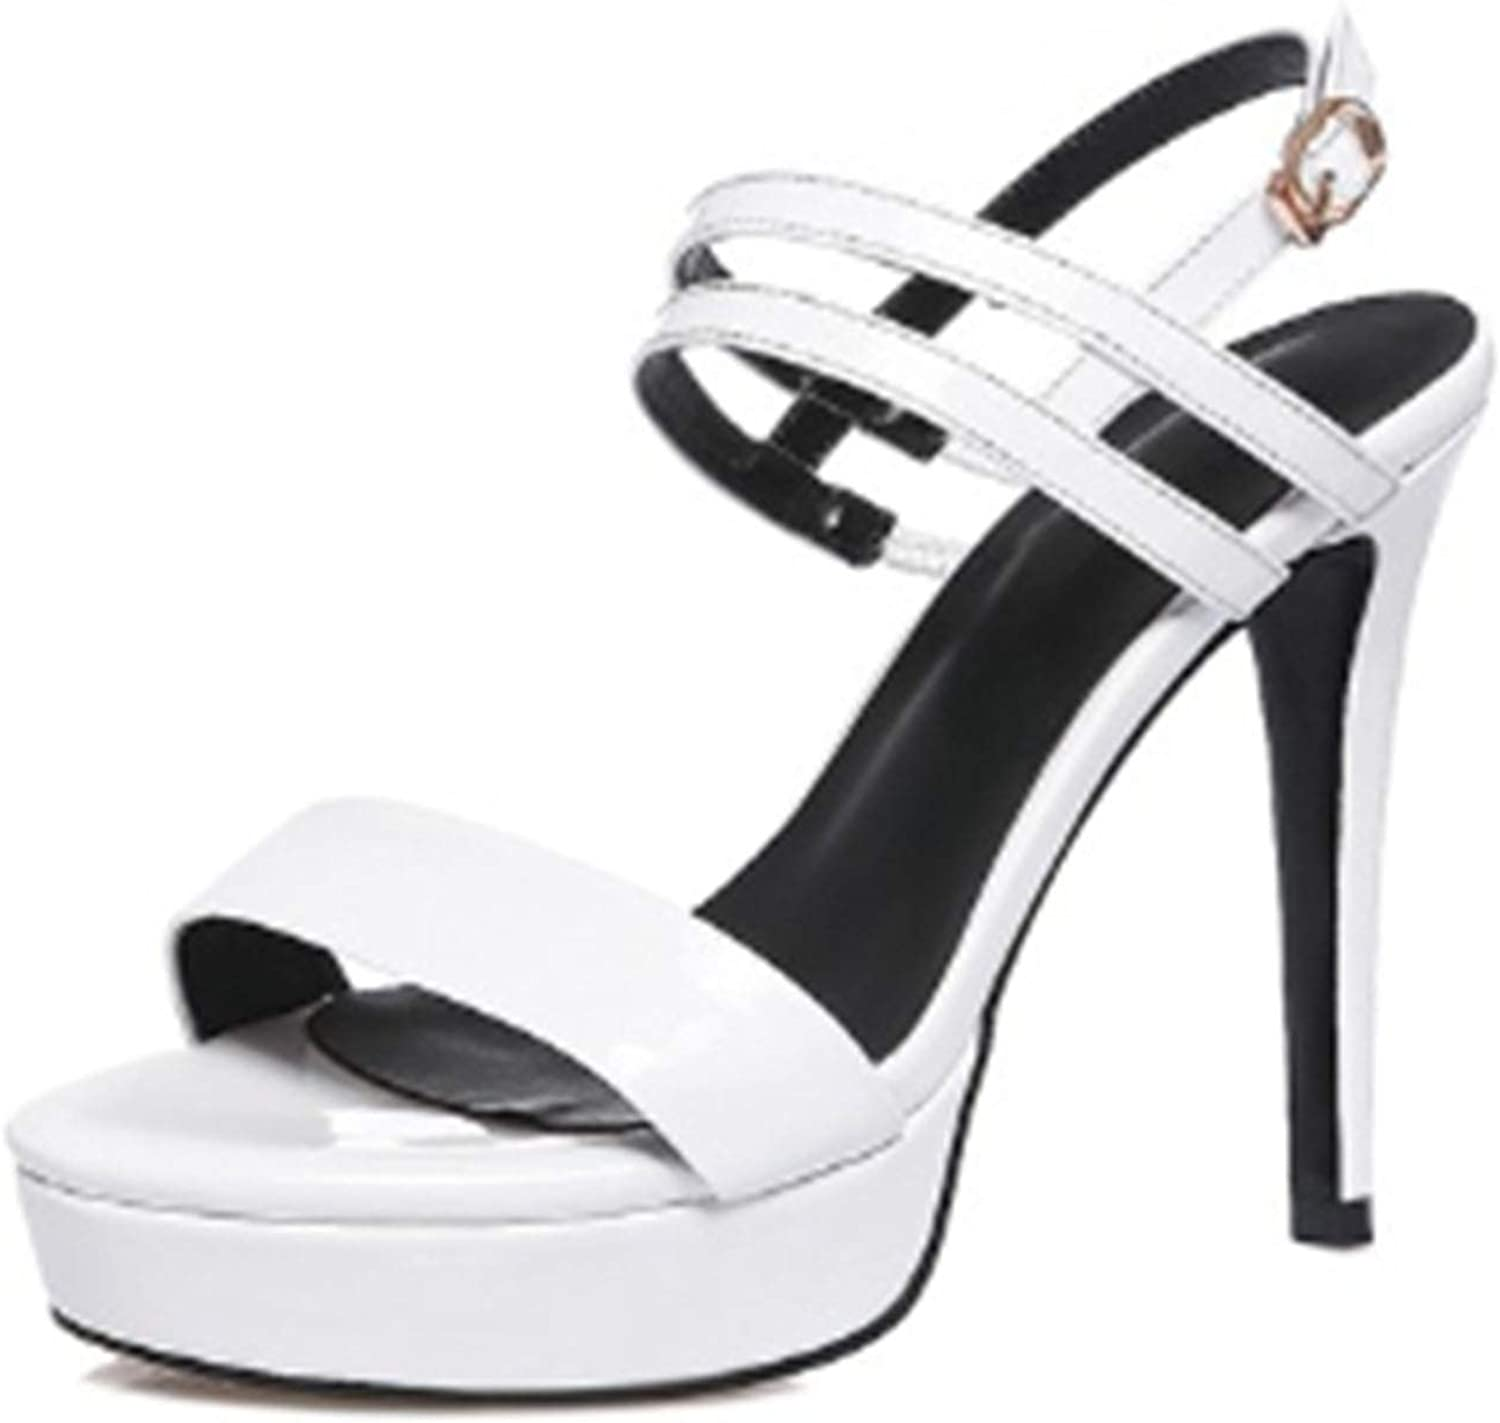 GO-SAMSARA heels Genuine Leather Basic Casual Women shoes shoes Women Sandals Summer LY750